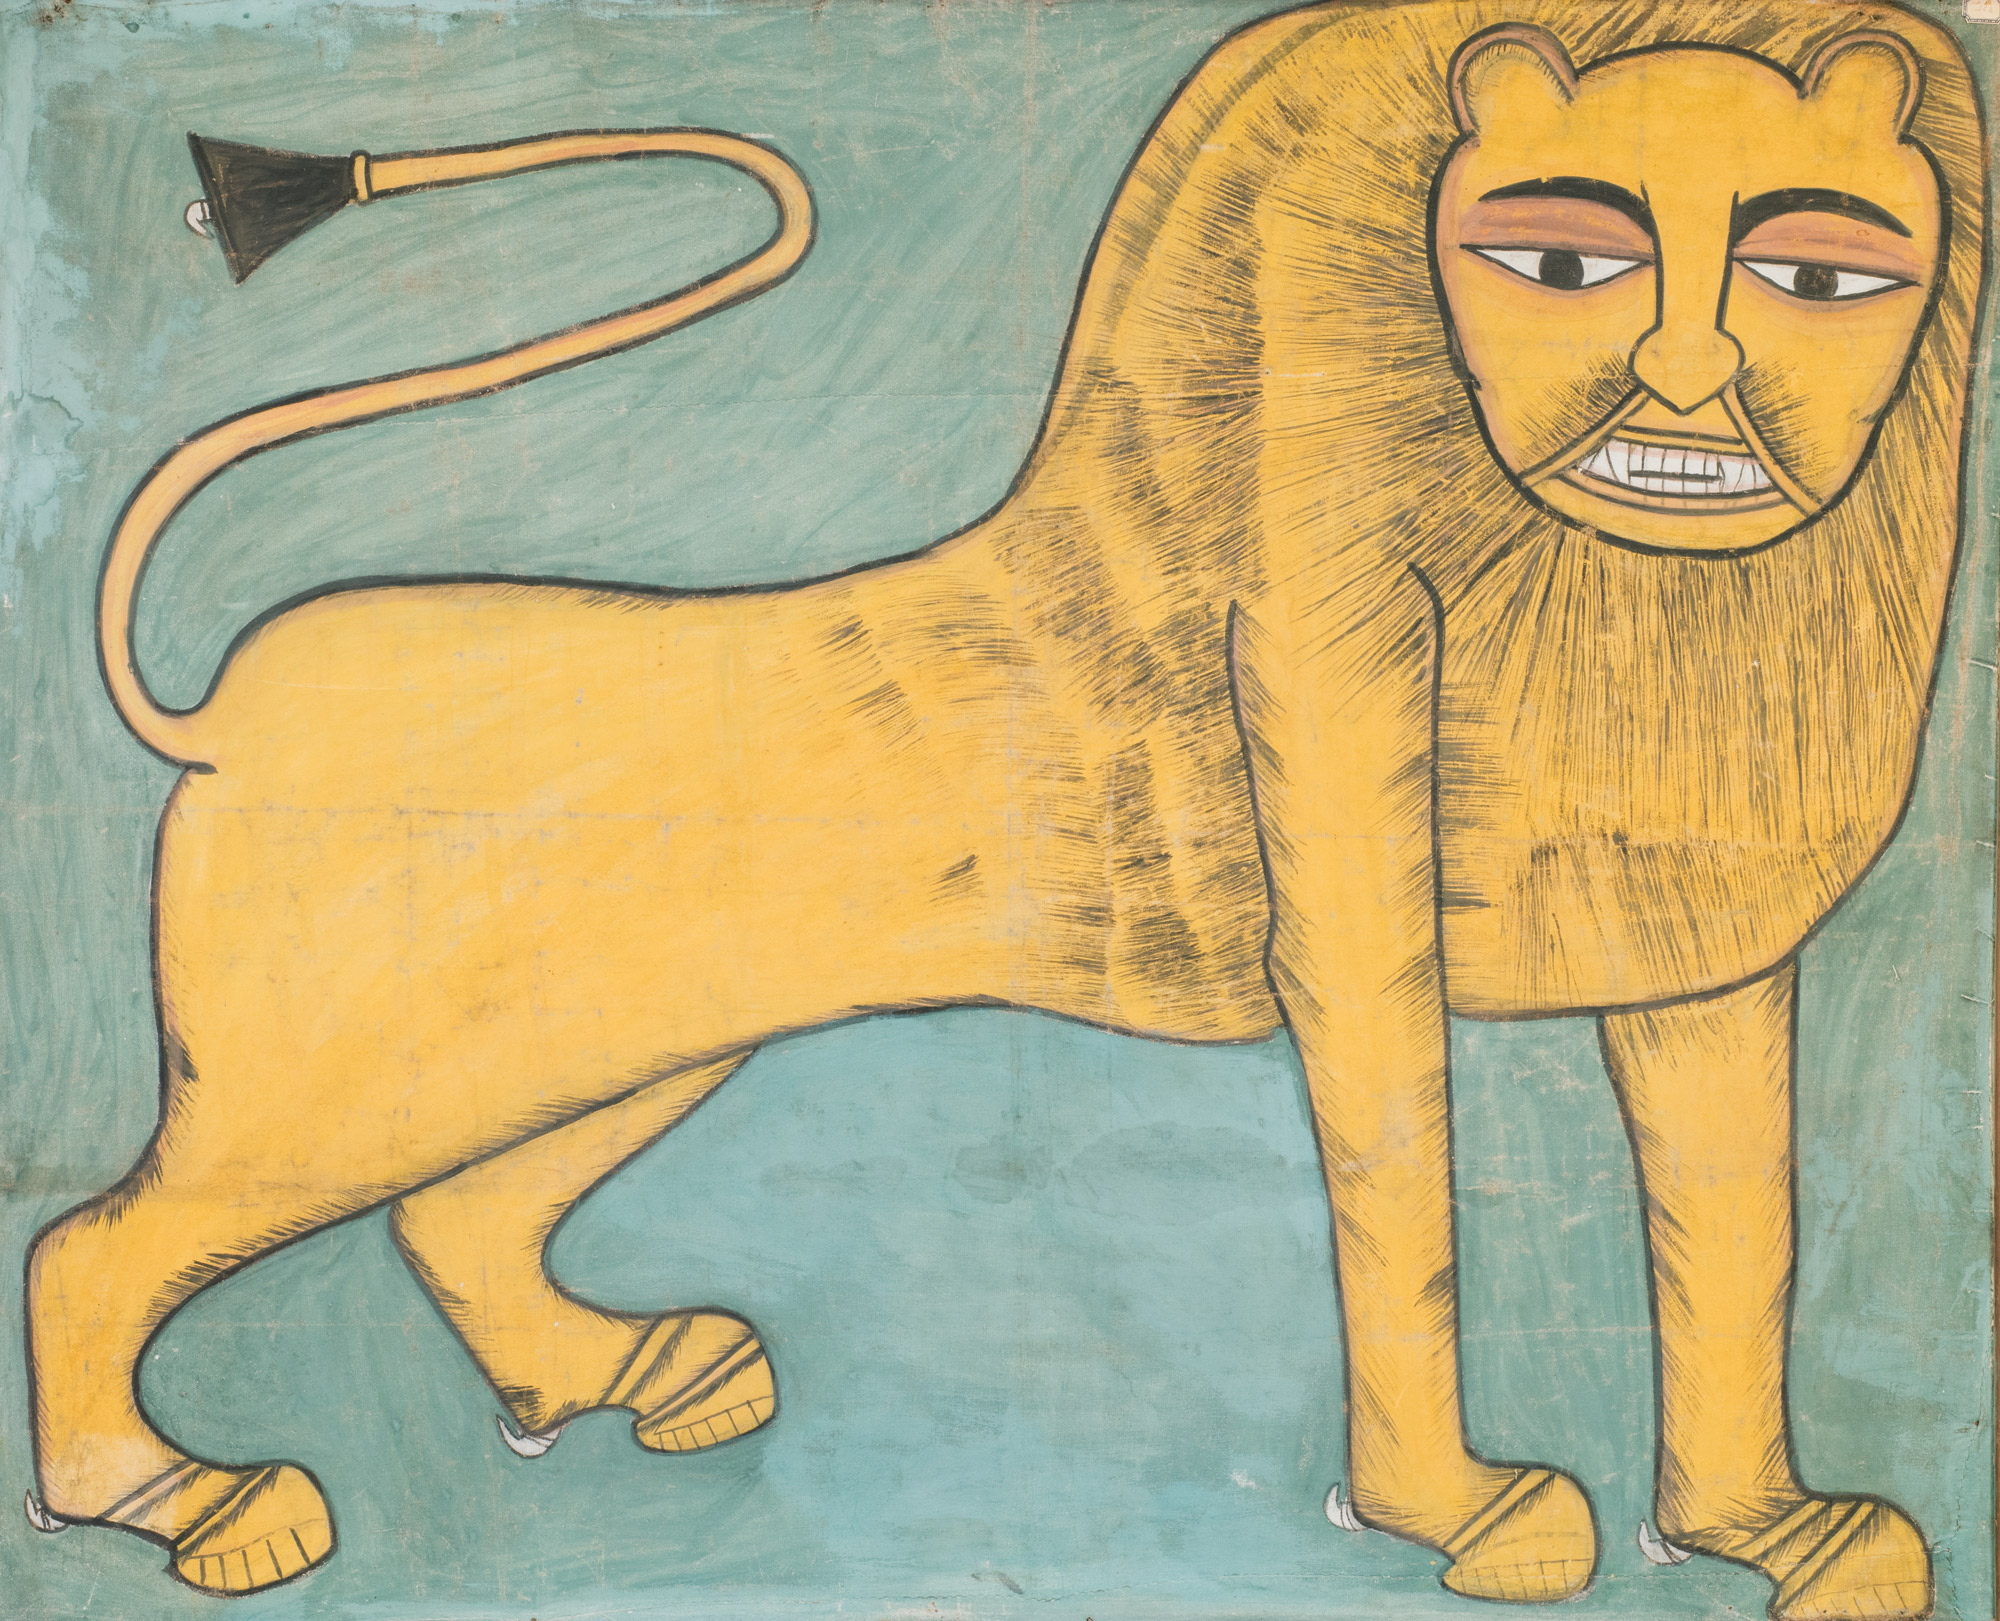 abyssinian painting, tempera on canvas; from Eritrea colony, 157 x 130 cm each